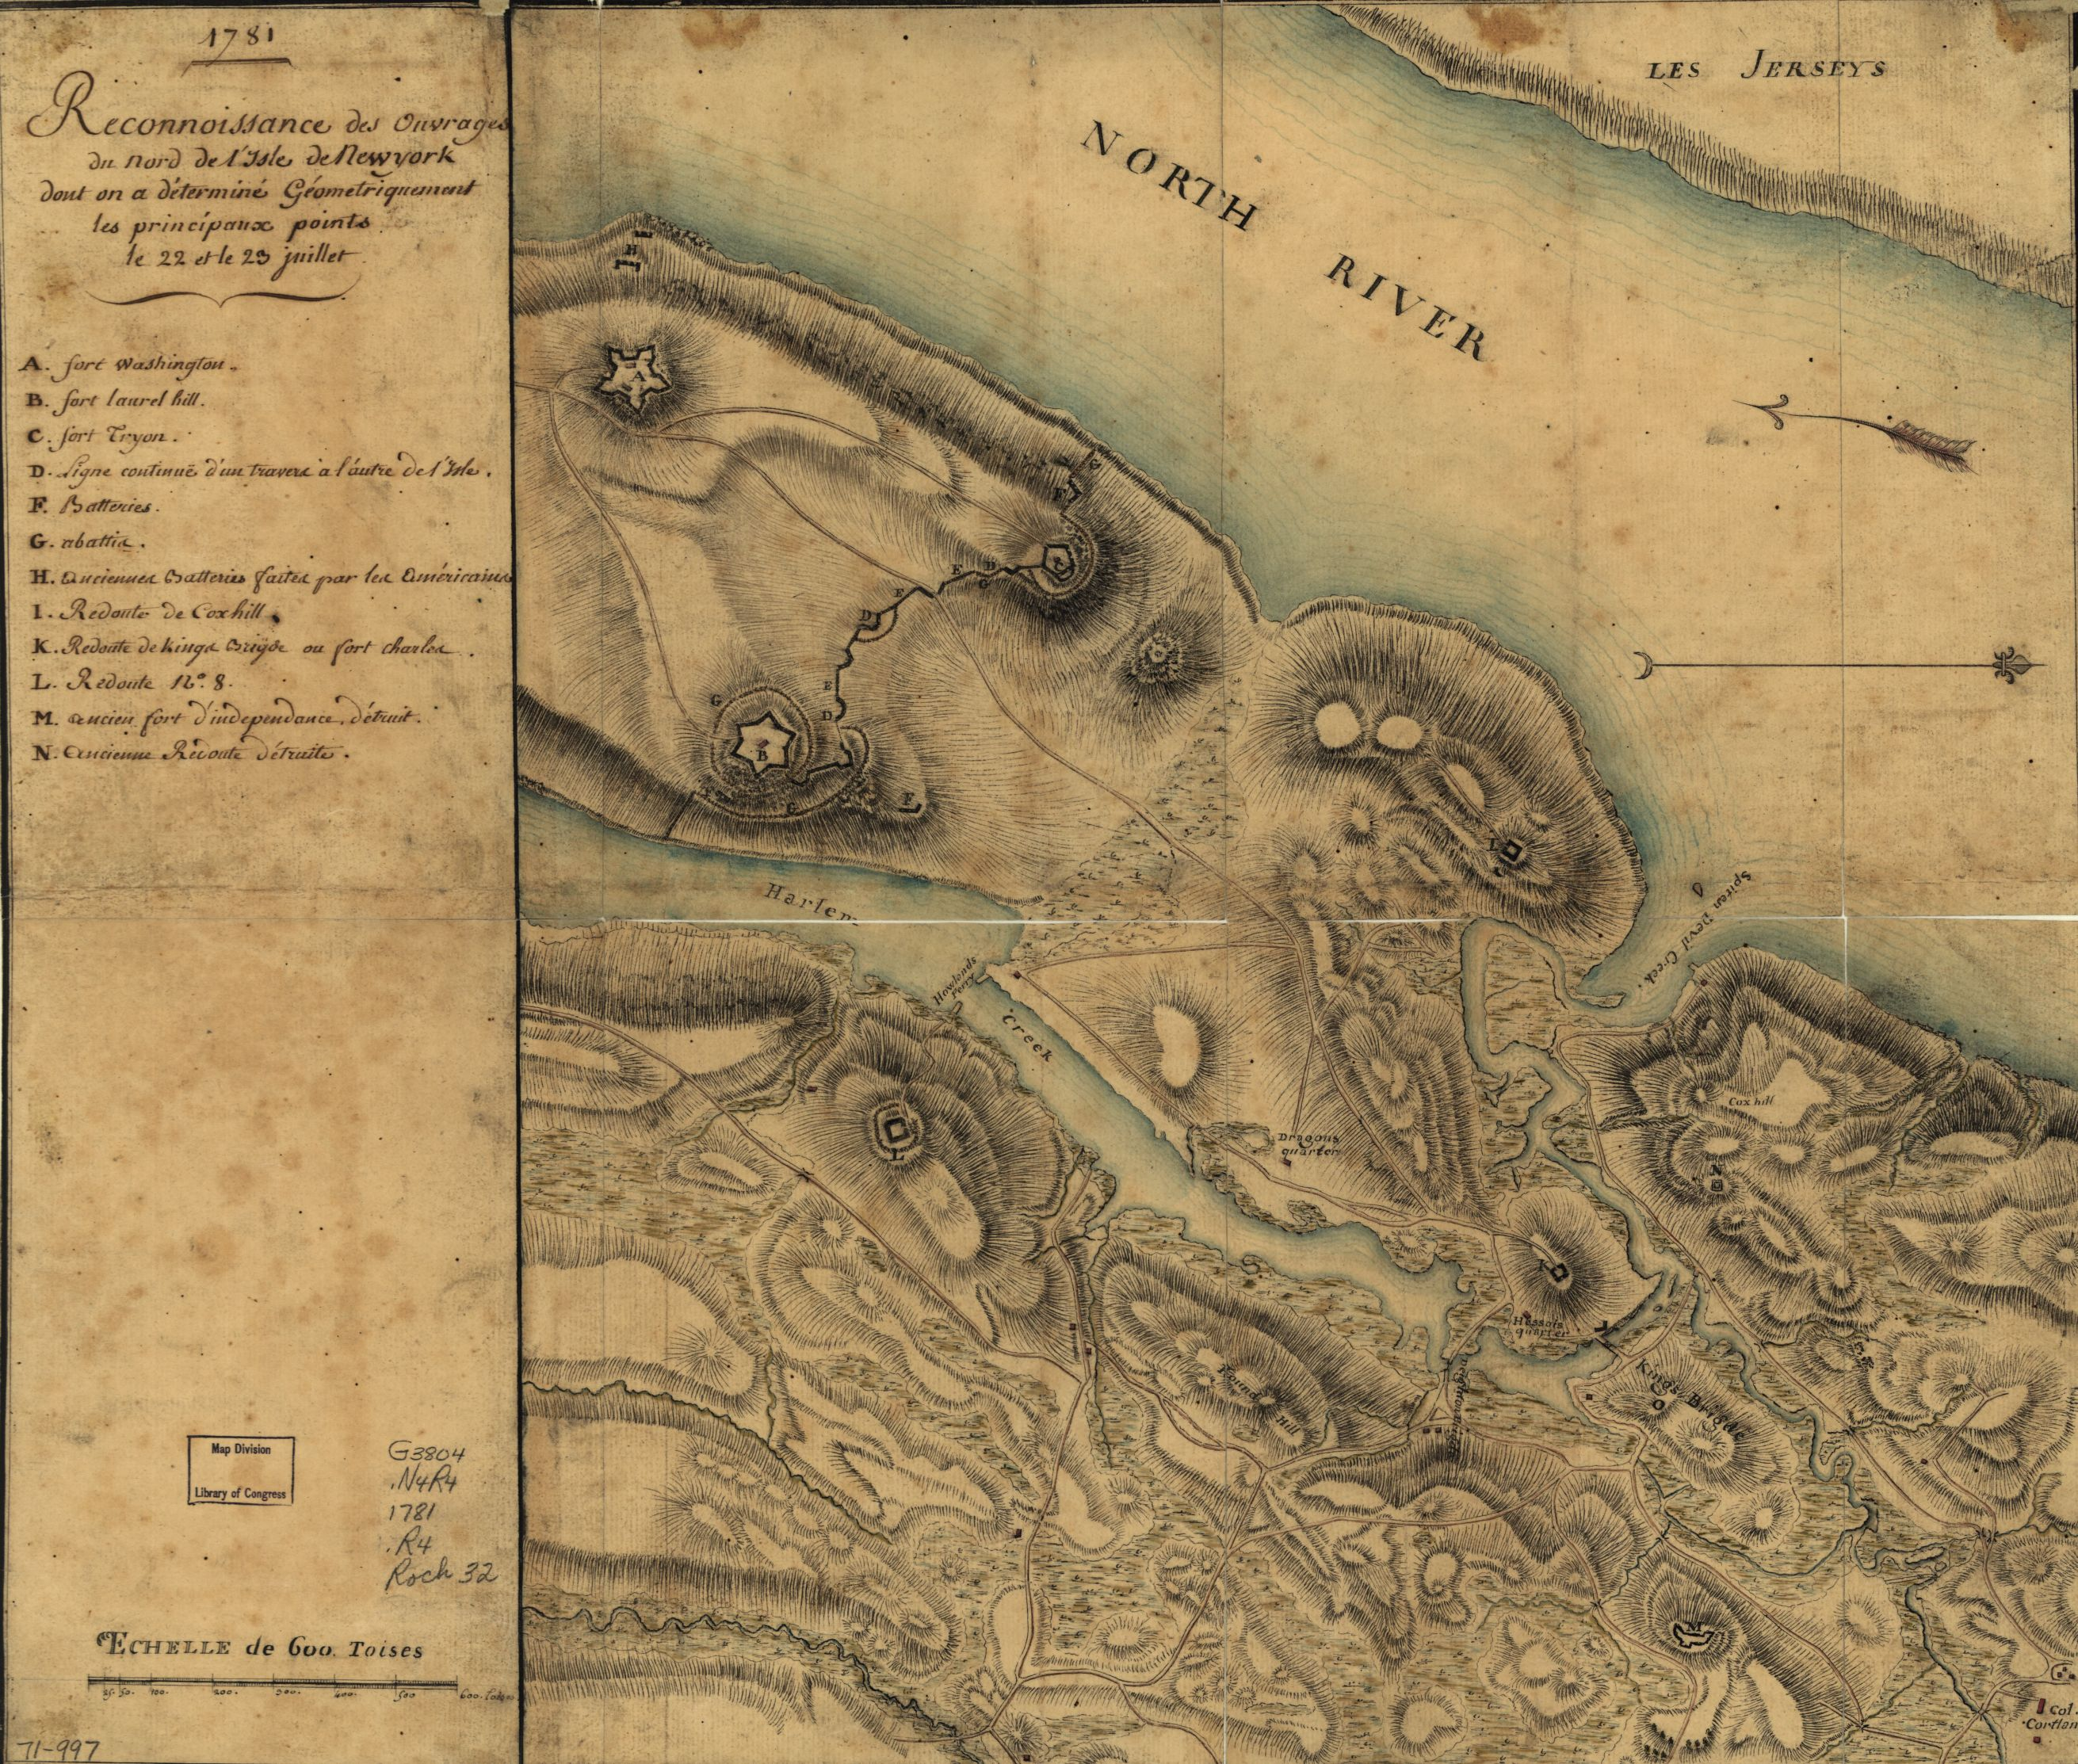 During their occupation of New York, the British removed a significant amount of trees from the island of Manhattan in order to construct fortifications. Reconnoissance des ouvrages du nord de l'Isle de Newyork dont on a déterminé géometriquement les principaux points le 22 et le 23 juillet. Courtesy Library of Congress. [gm71000997].